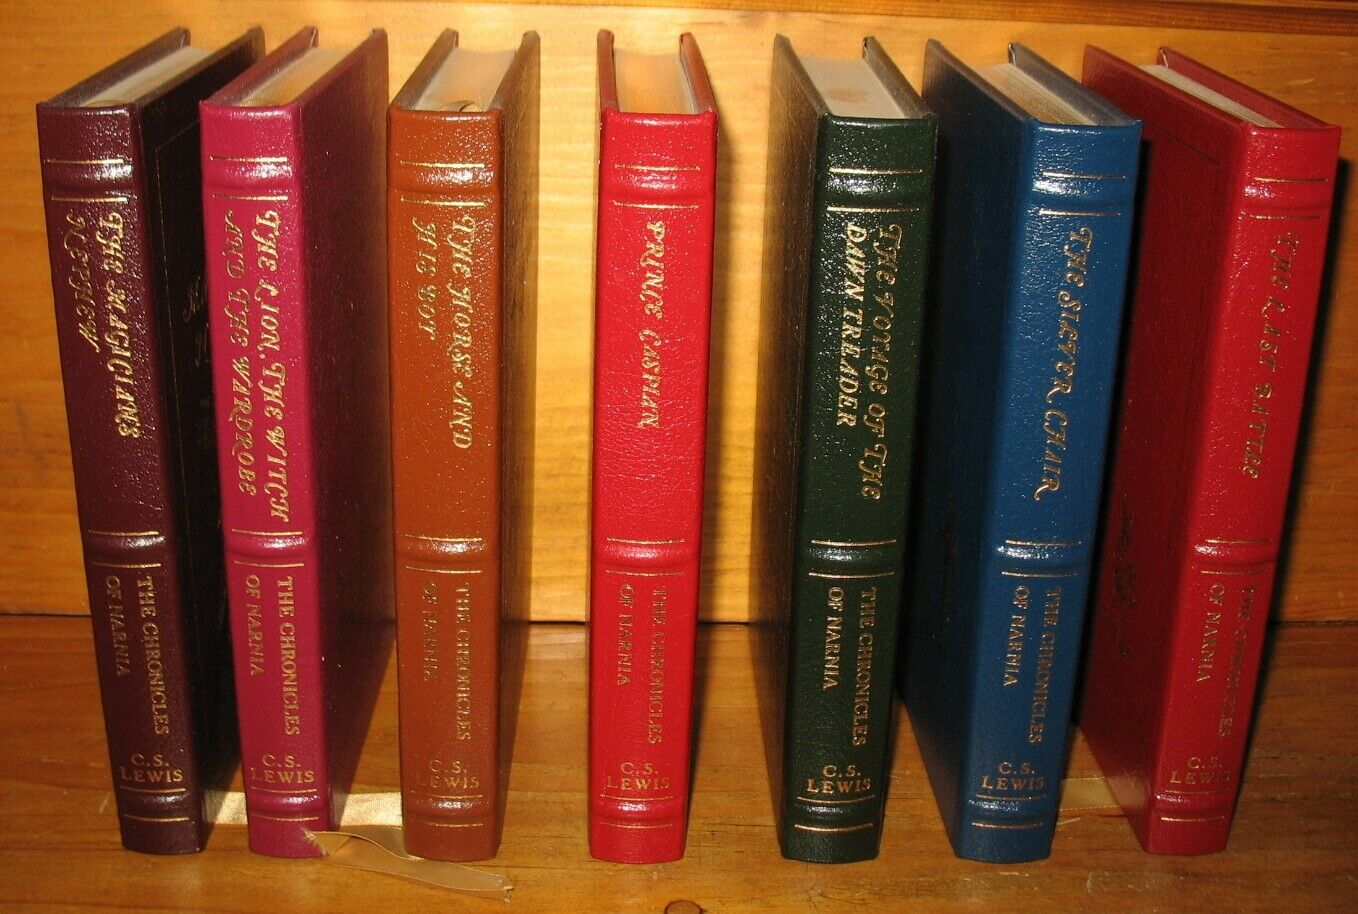 7 vol. set Easton Press Chronicles of Narnia by C.S. Lewis Leather Excellent |